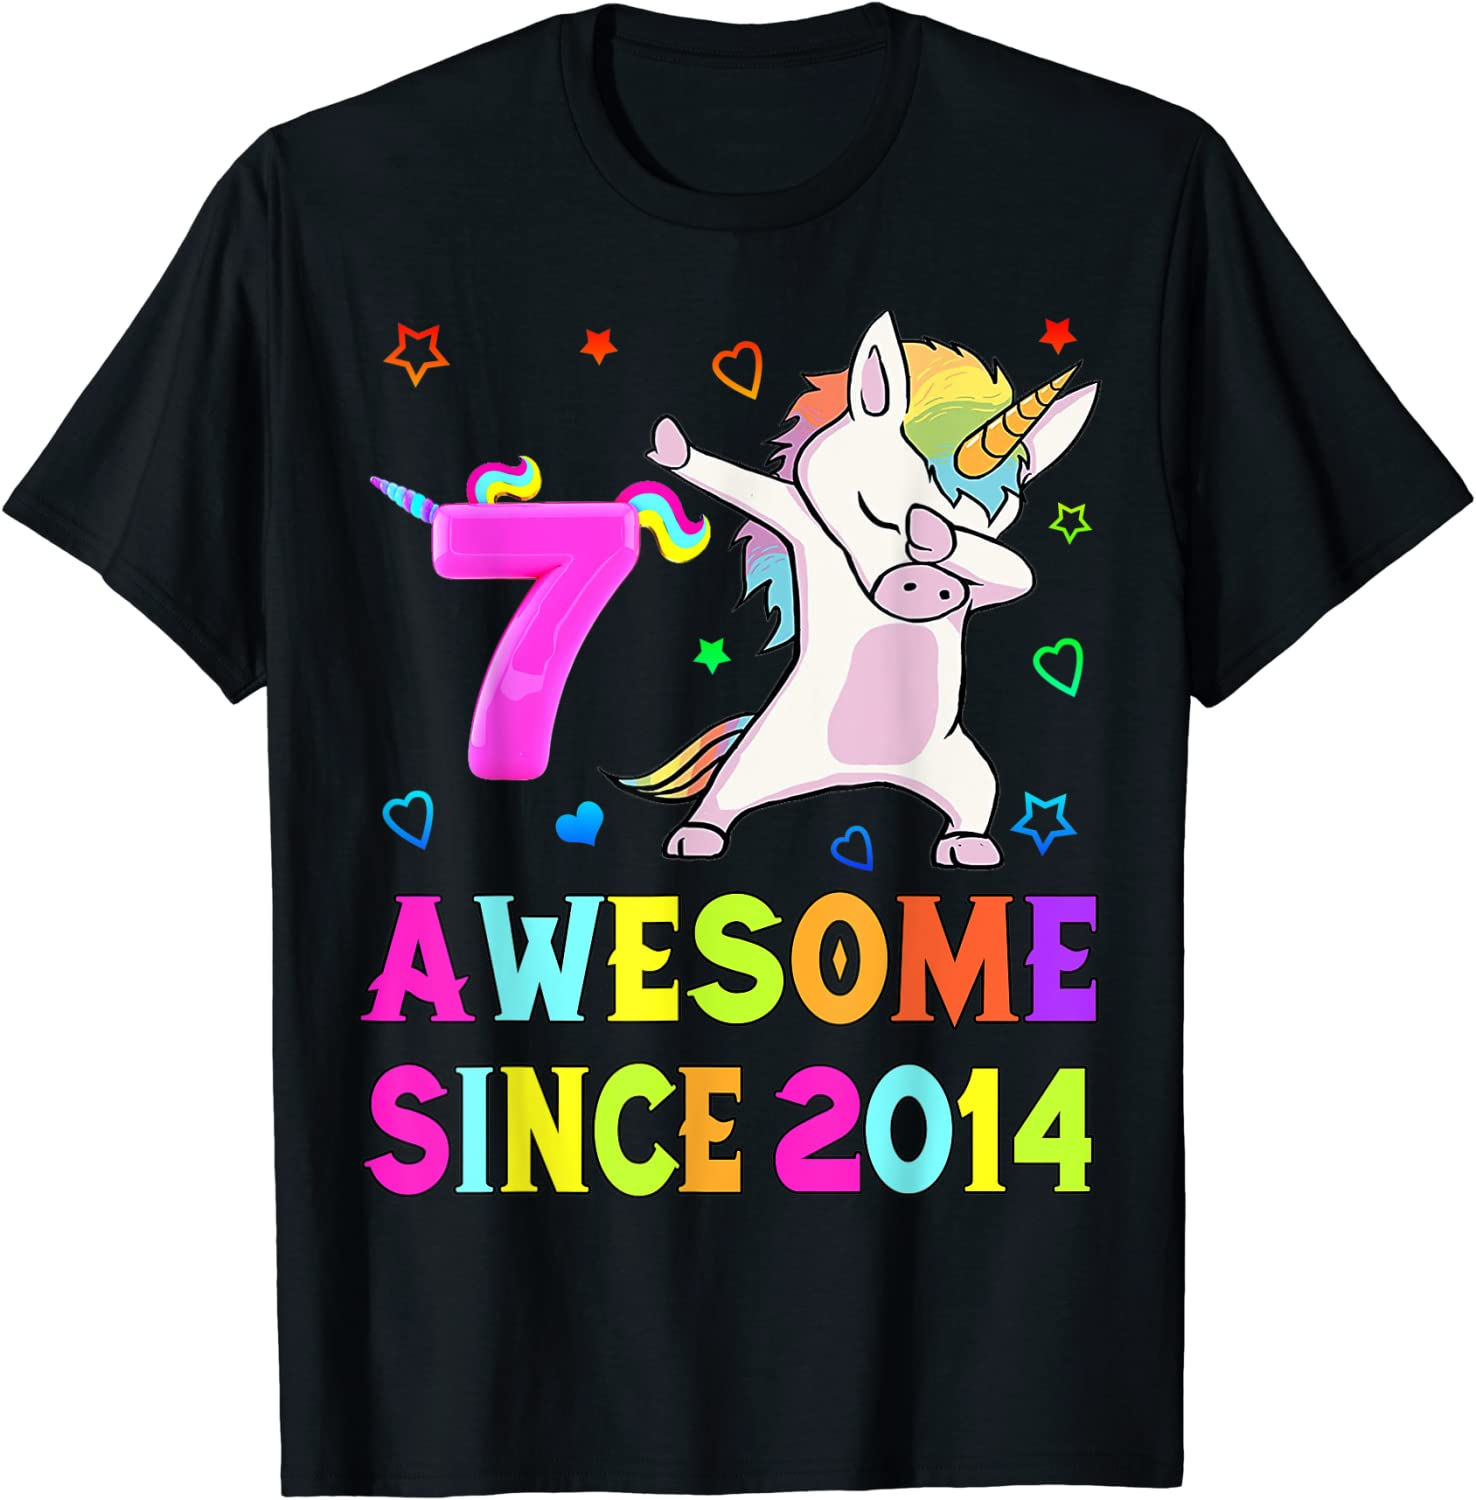 7th Bday Girl Unicorn 25% OFF Las Vegas Mall Dabbing Awesome 7yrs T-Sh 2014 old since